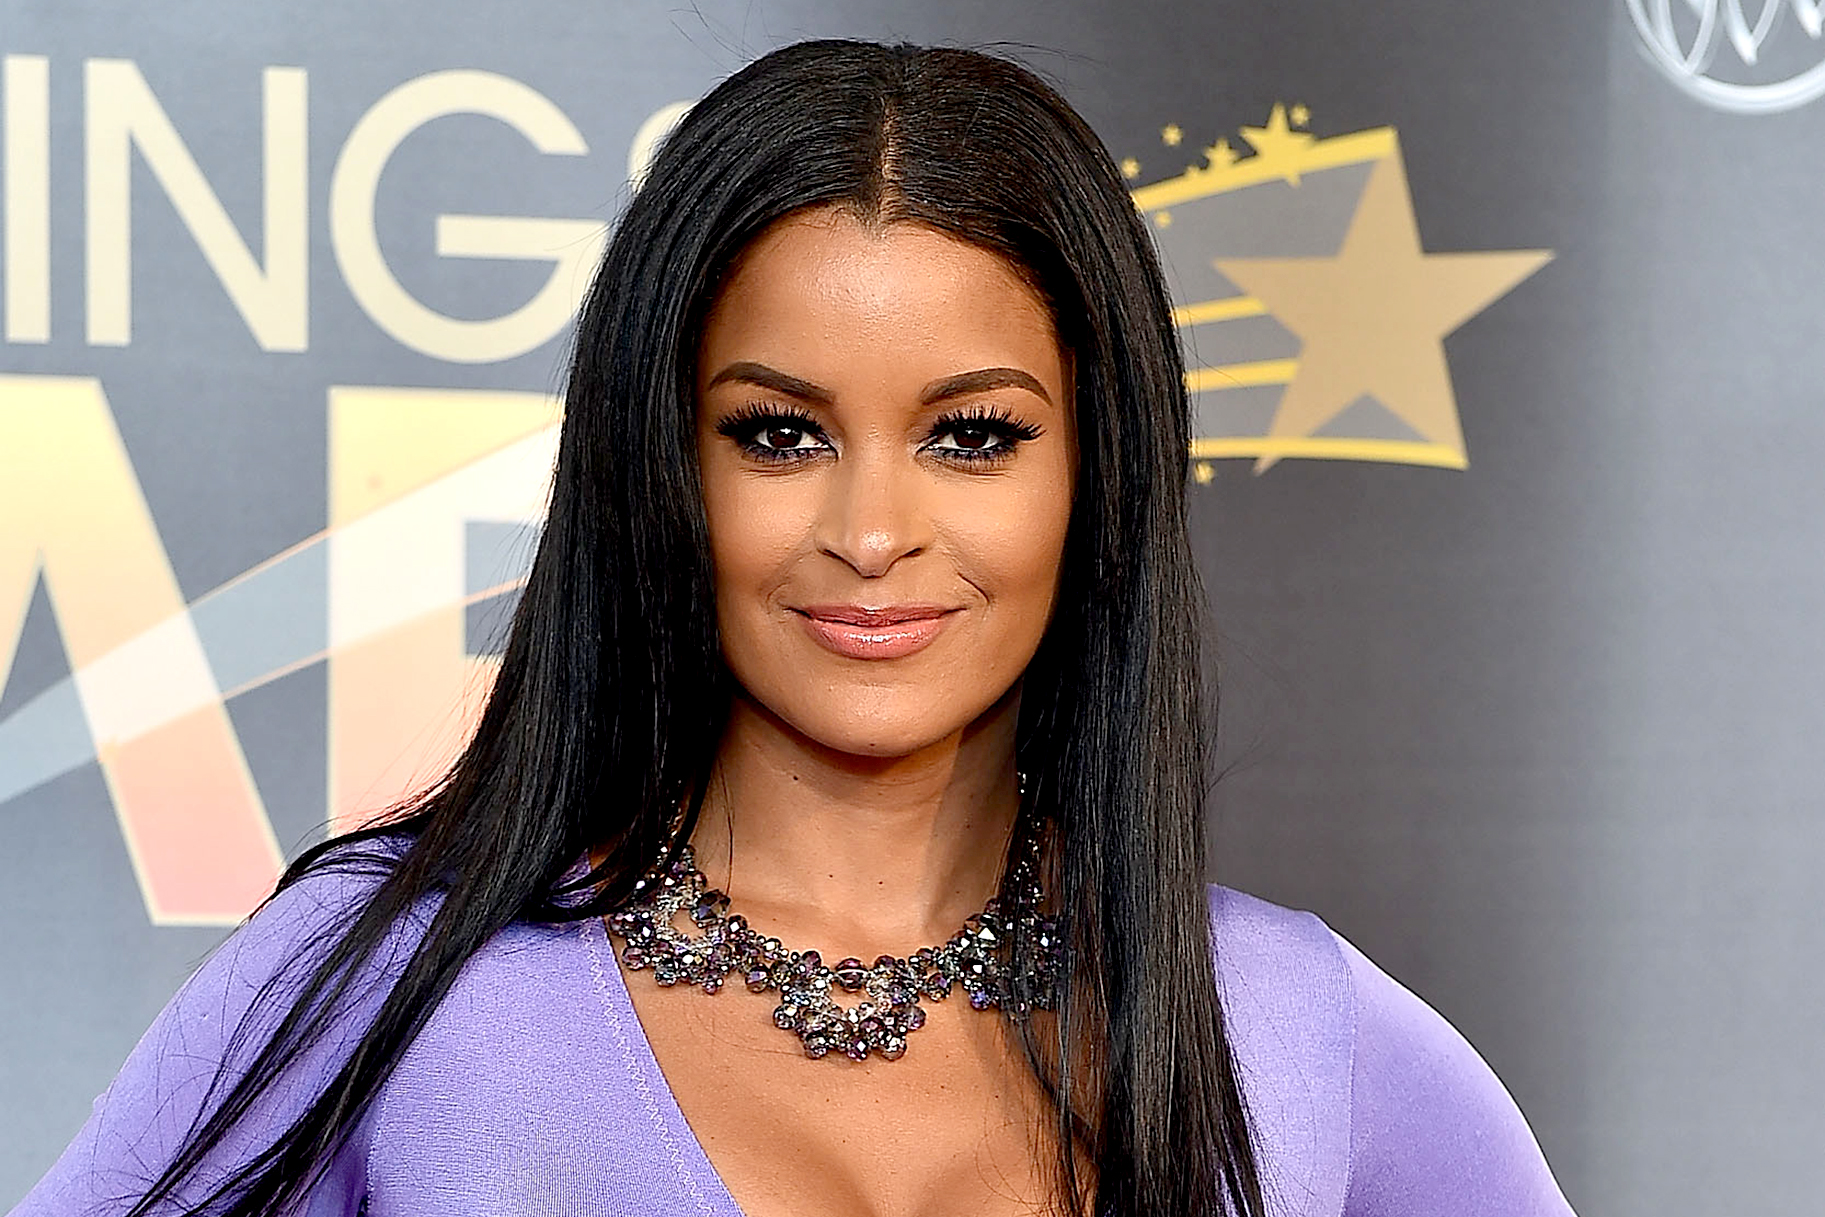 Instagram Claudia Jordan naked (68 foto and video), Topless, Hot, Selfie, panties 2020